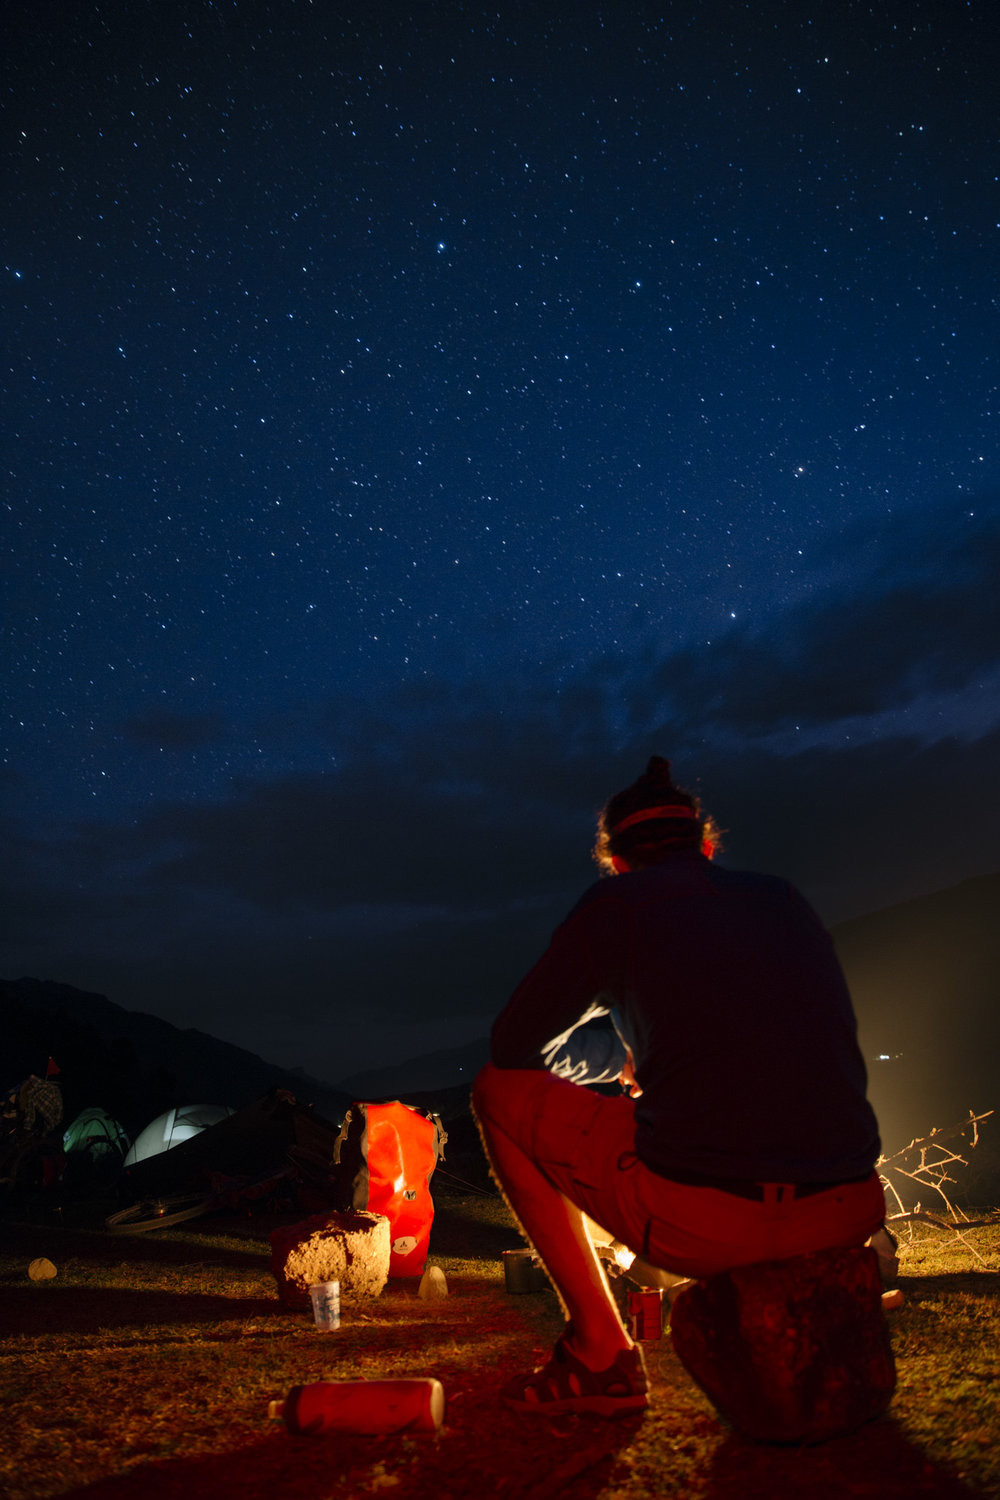 Camping under the stars on the Khingob river bed.